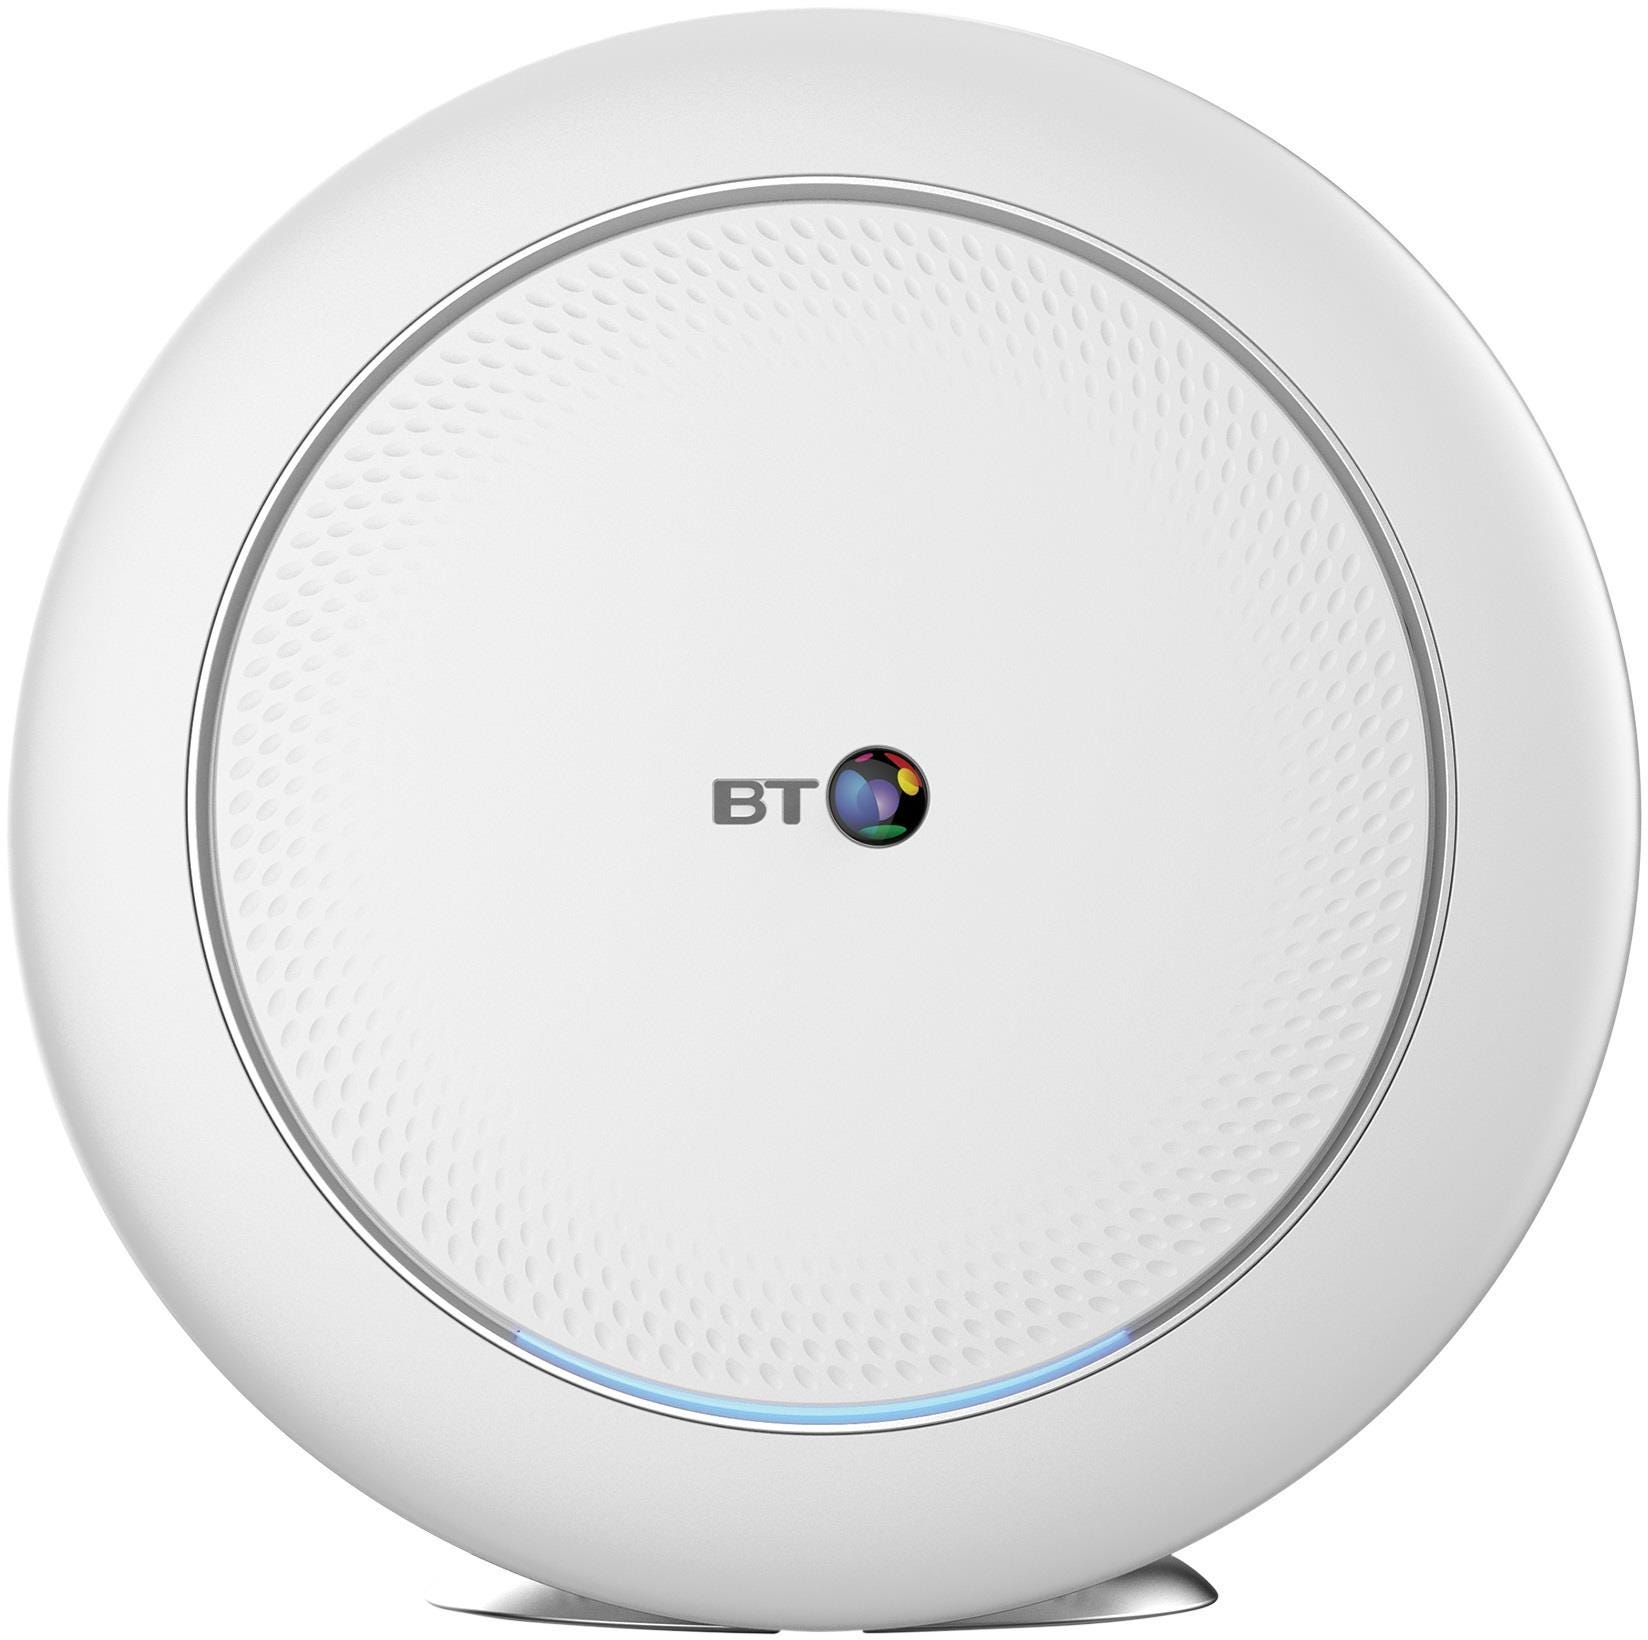 BT Mini Whole Home WiFi System Add-On